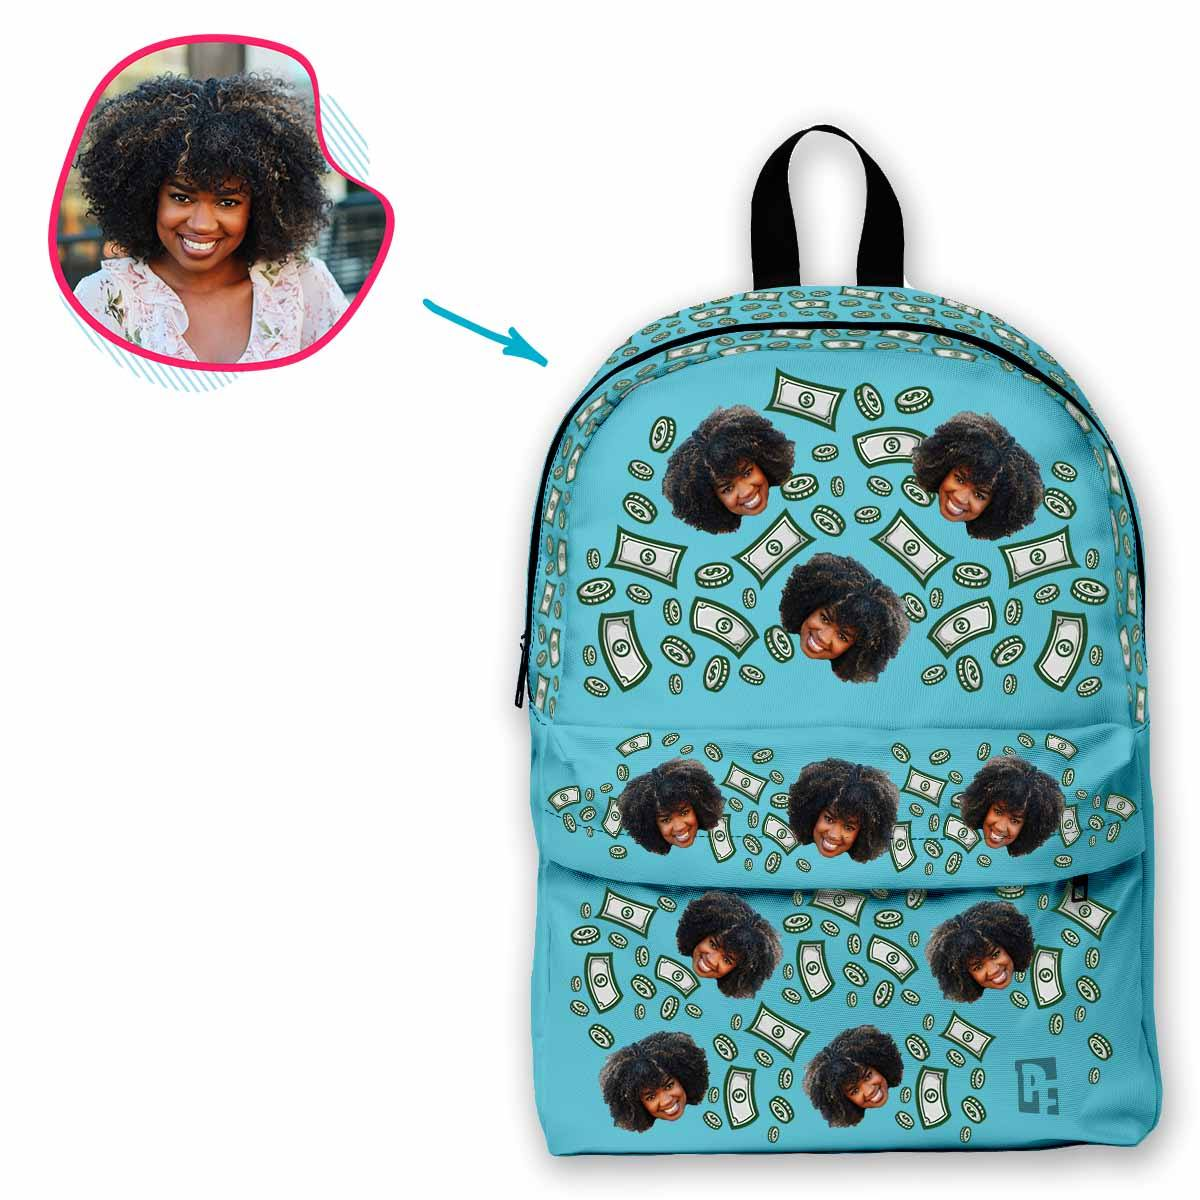 blue Money classic backpack personalized with photo of face printed on it